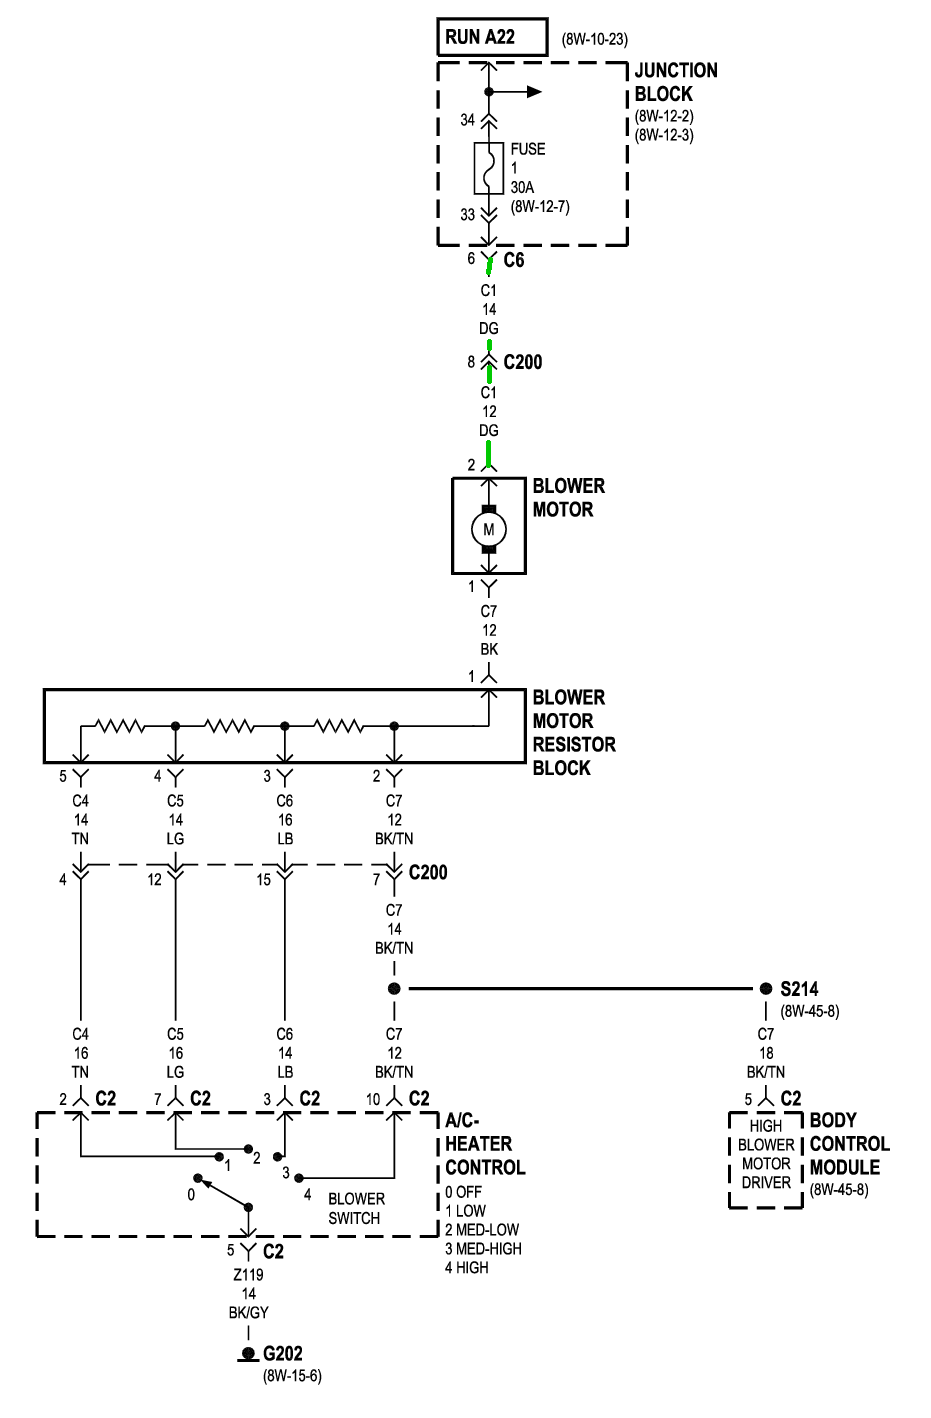 2005 chrysler sebring fuse box diagram lmFtQhg 2007 chrysler sebring stereo wiring diagram 2005 jeep grand  at gsmx.co